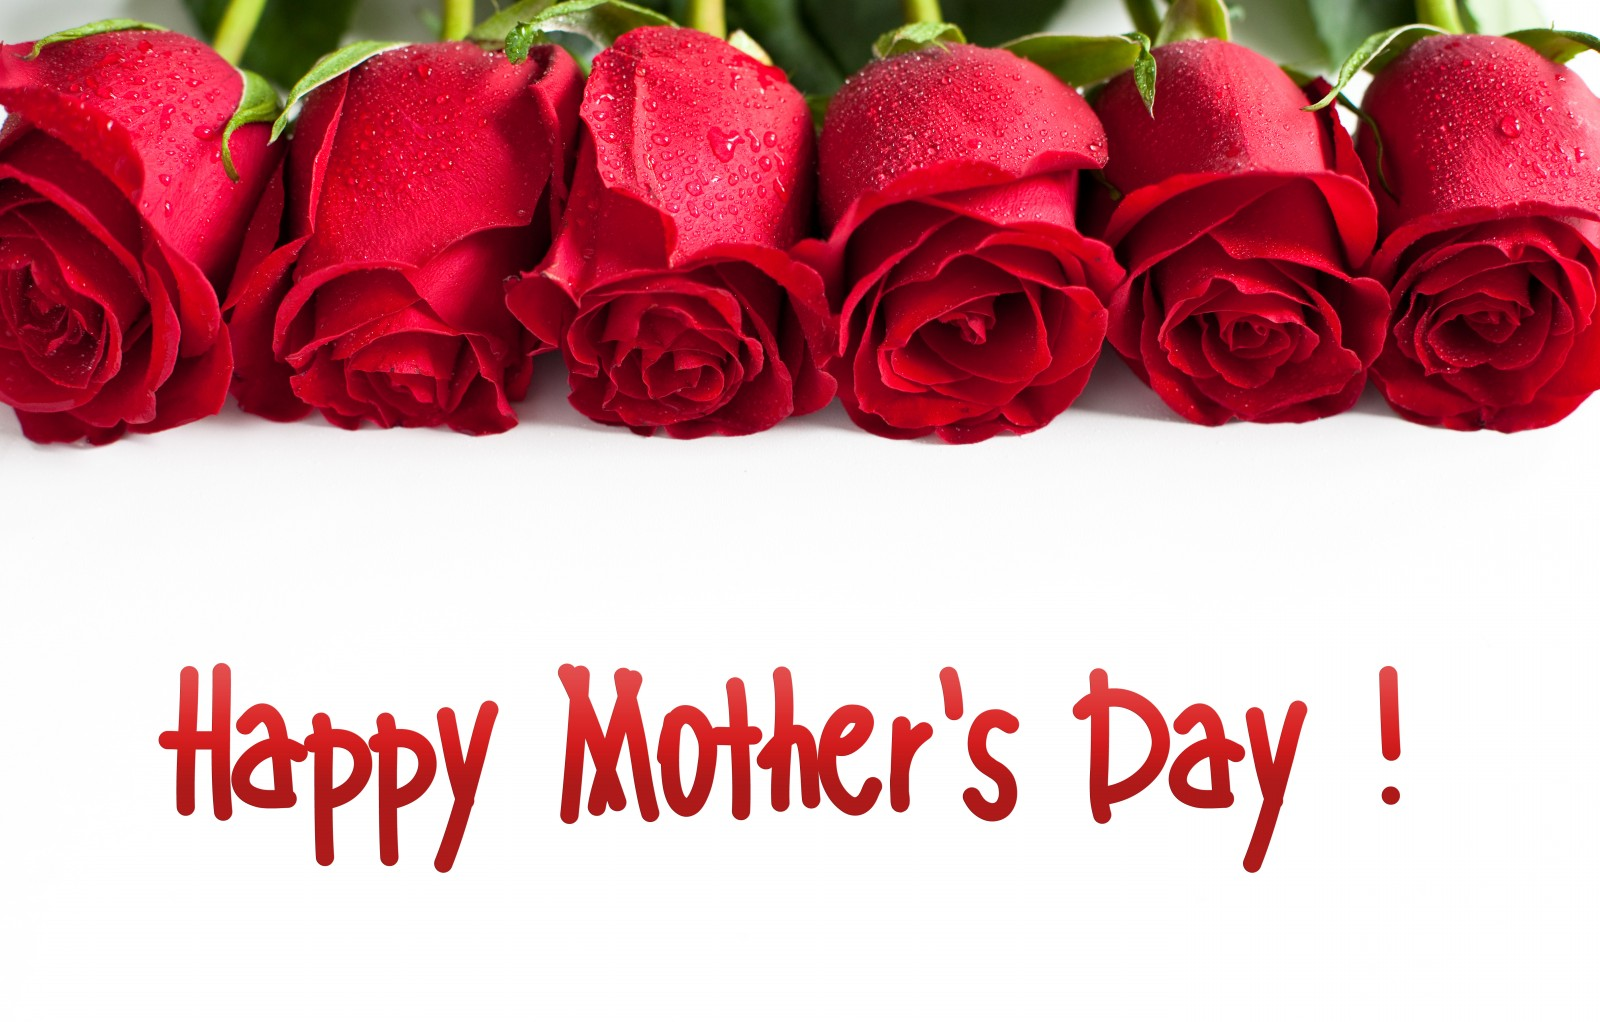 mom happy mothers day - HD1600×1022